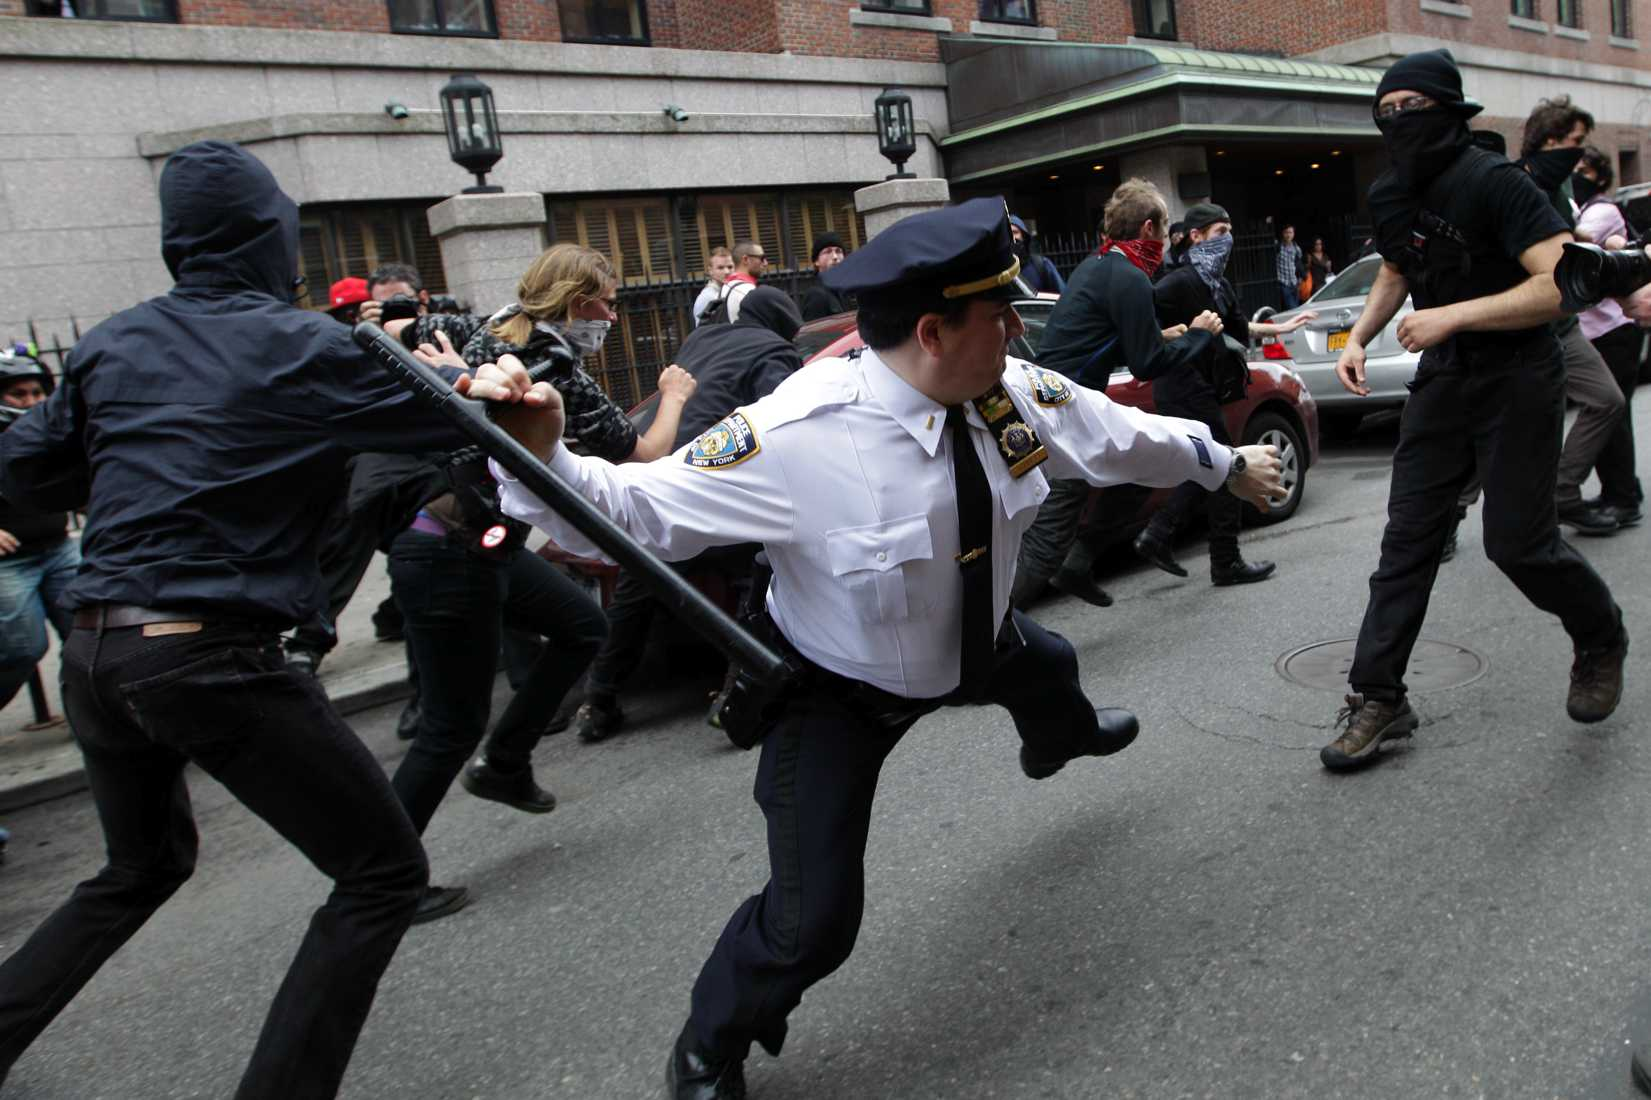 A police lieutenant swings his baton at Occupy Wall Street activists in New York City on May 1, 2012.